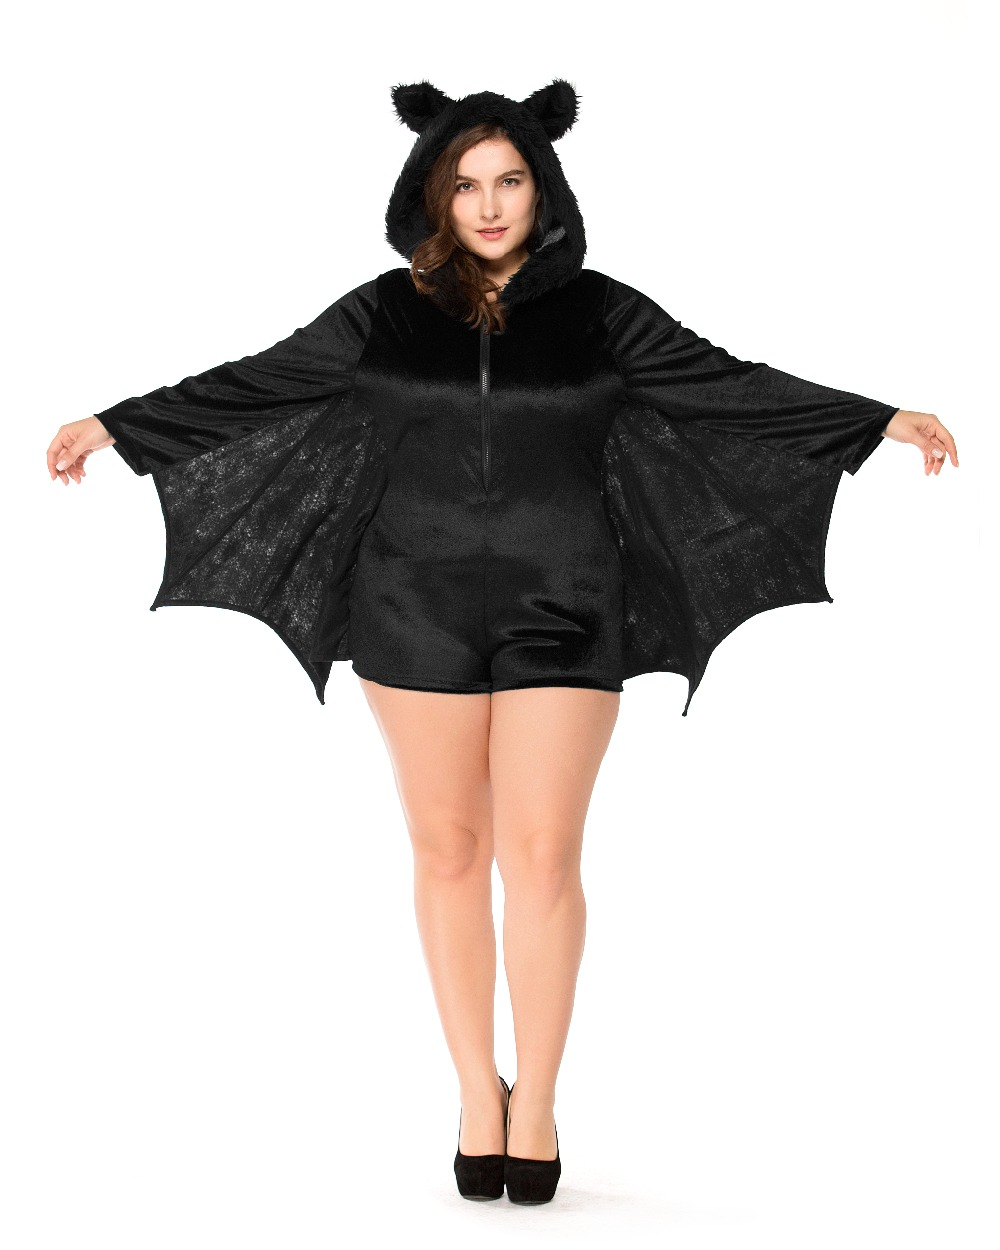 plus size Animal Cosplay Cute Bat Costume Kids Halloween Costumes Black Zipper Jumpsuit Connect Wings Batman Cloth A007